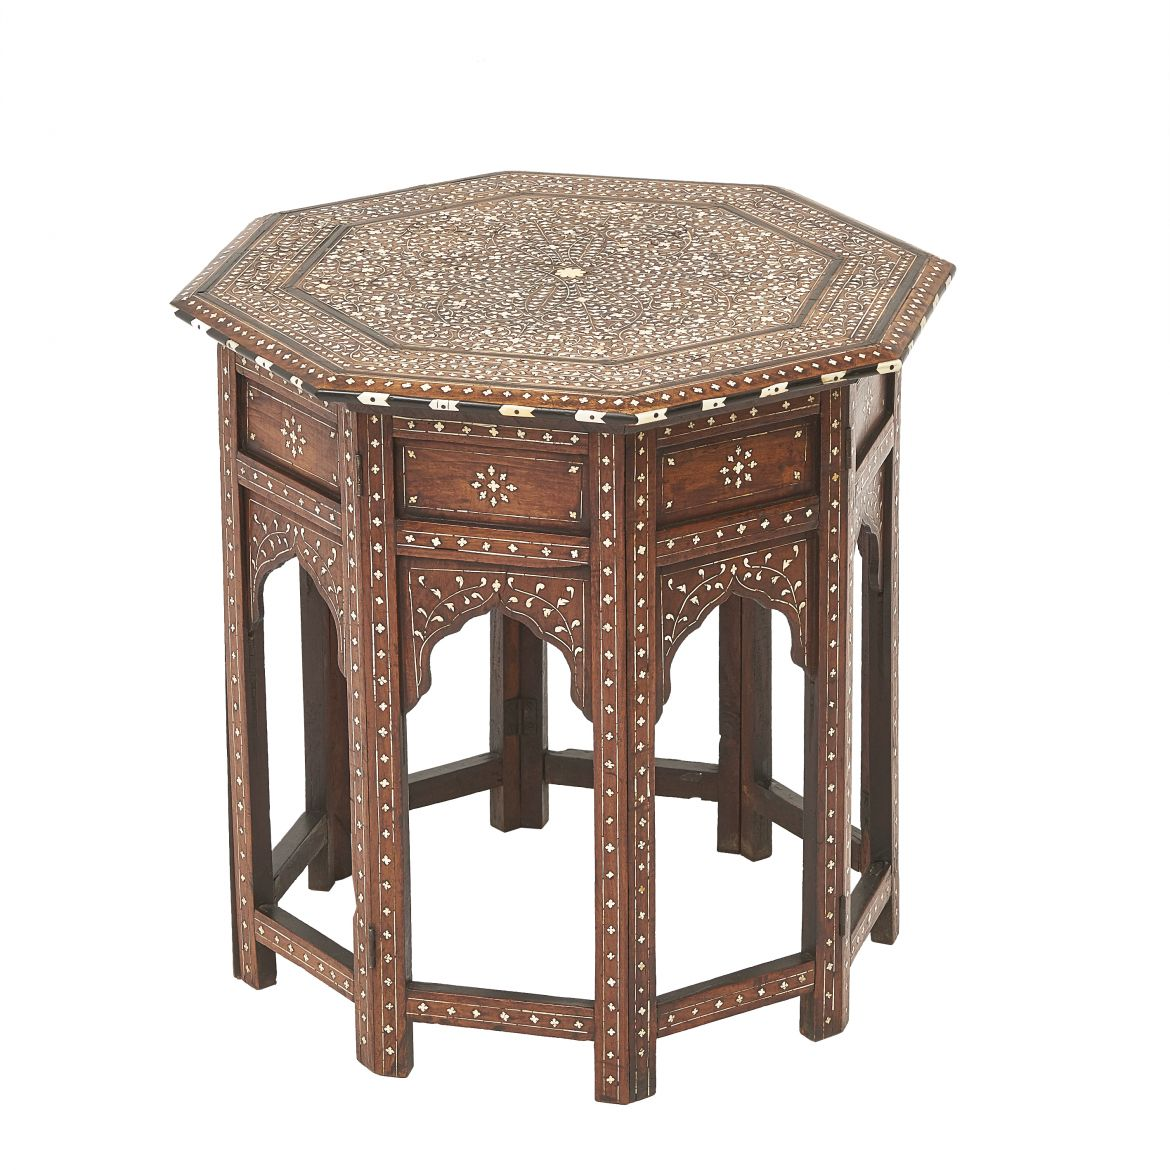 Indian Inlaid Folding Table